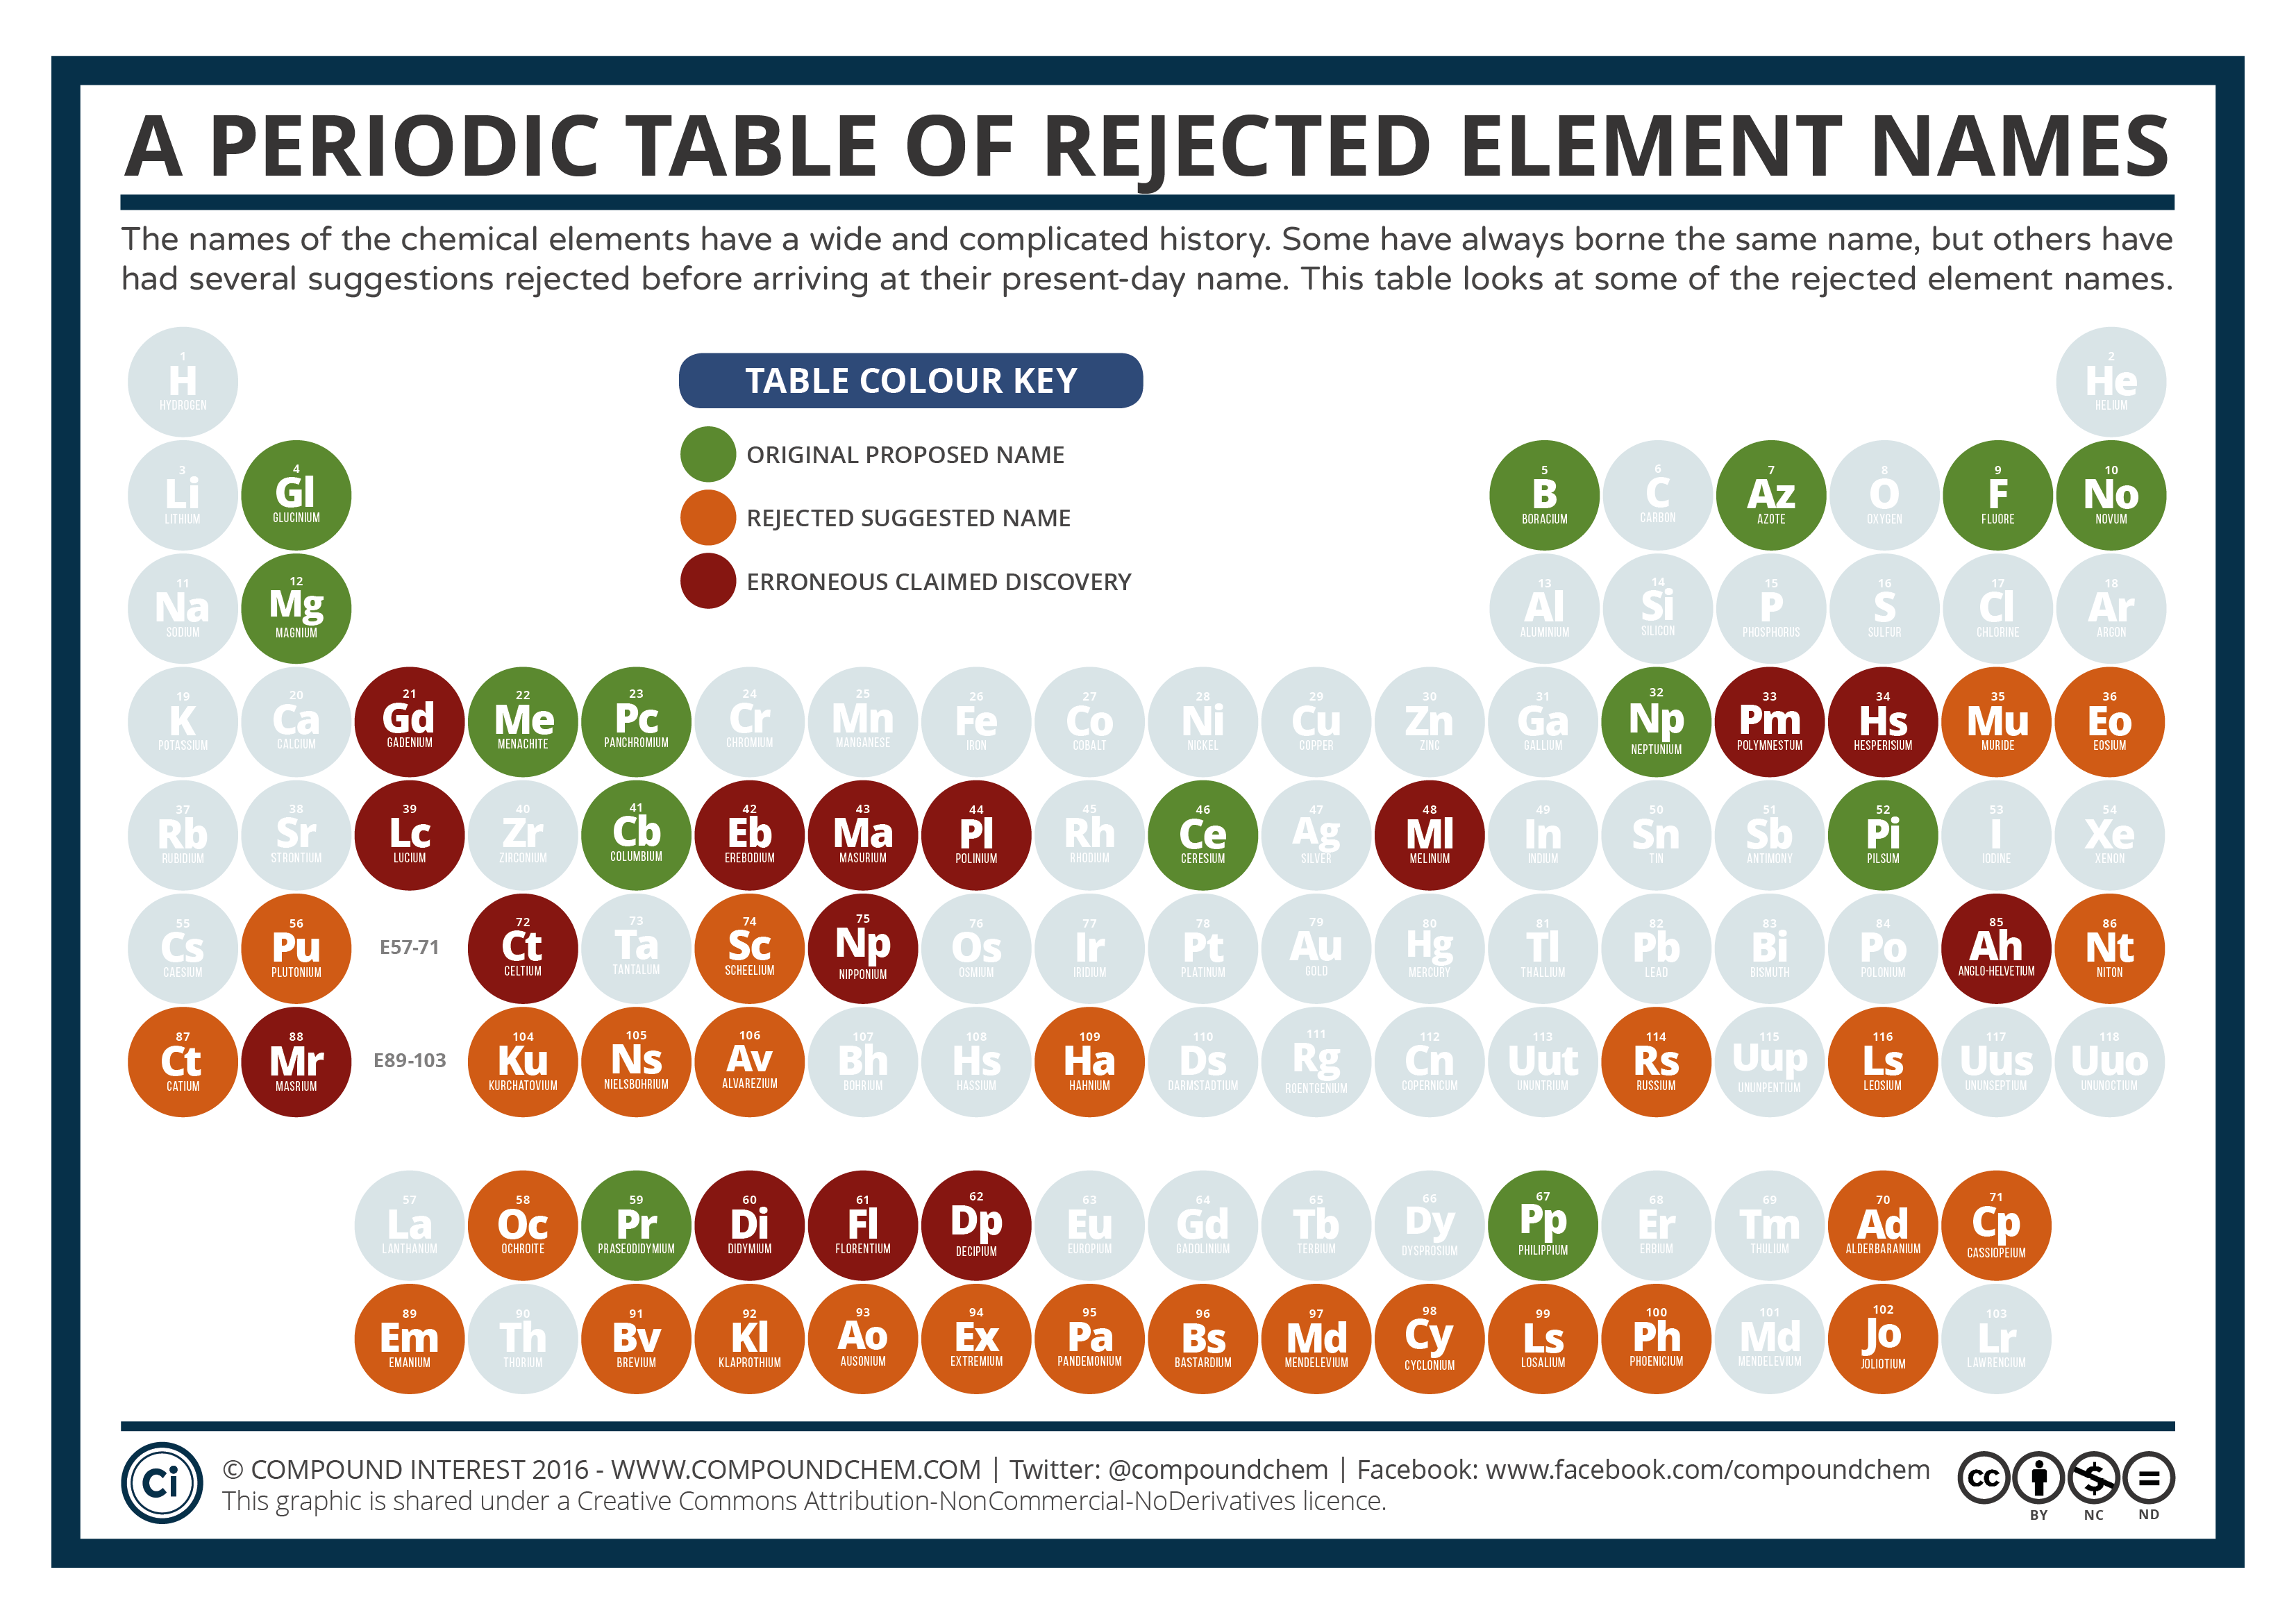 Compound interest a periodic table of rejected element names a periodic table of rejected element names gamestrikefo Images